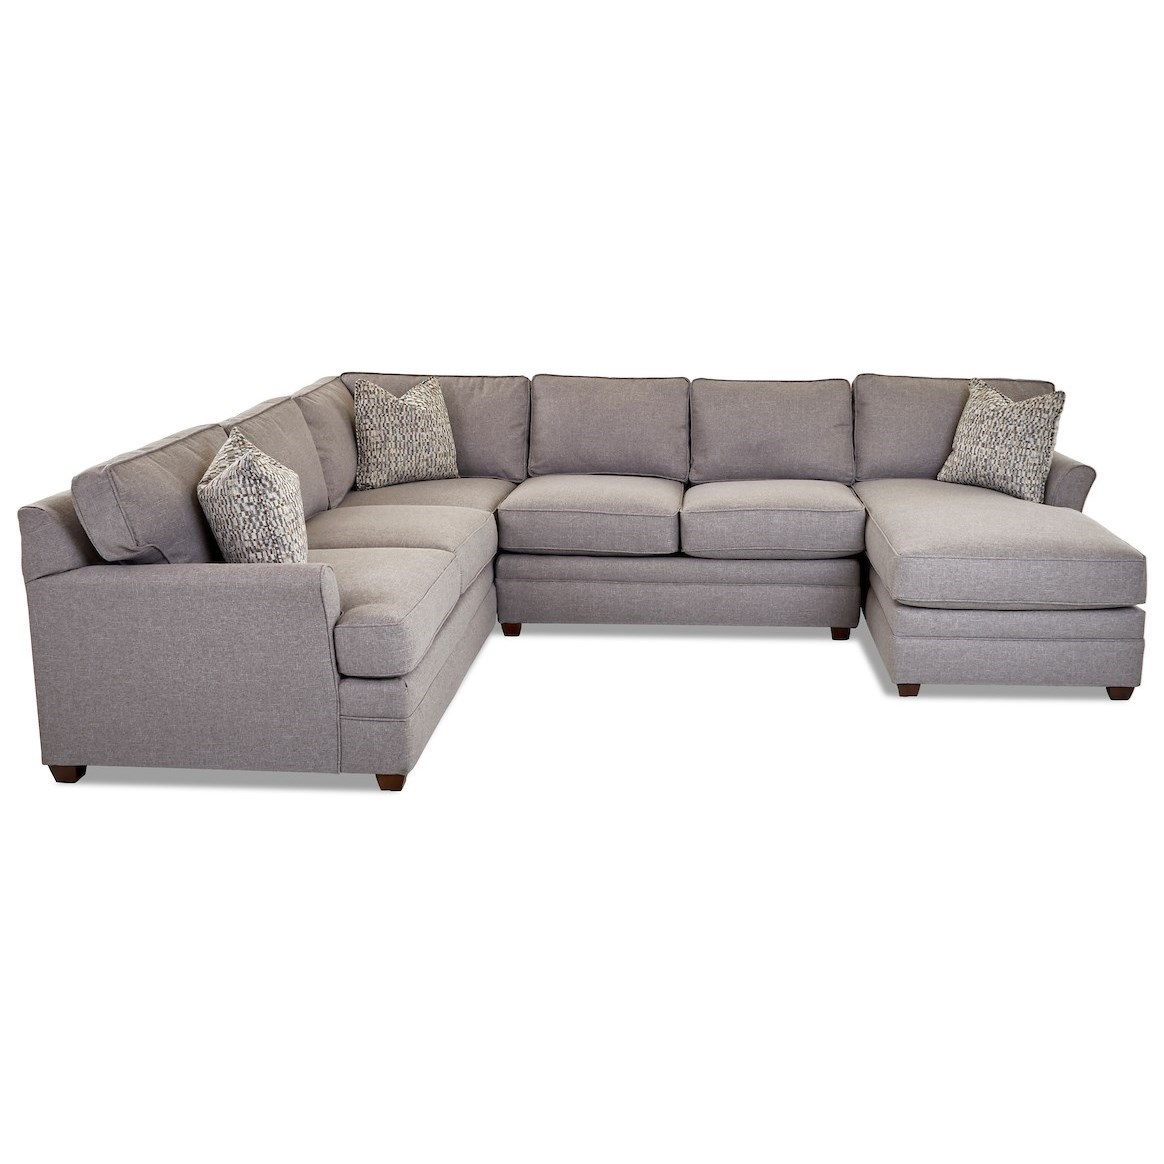 Living Your Way 3-Piece Sectional Sofa w/ RAF Chaise by Klaussner at Van Hill Furniture